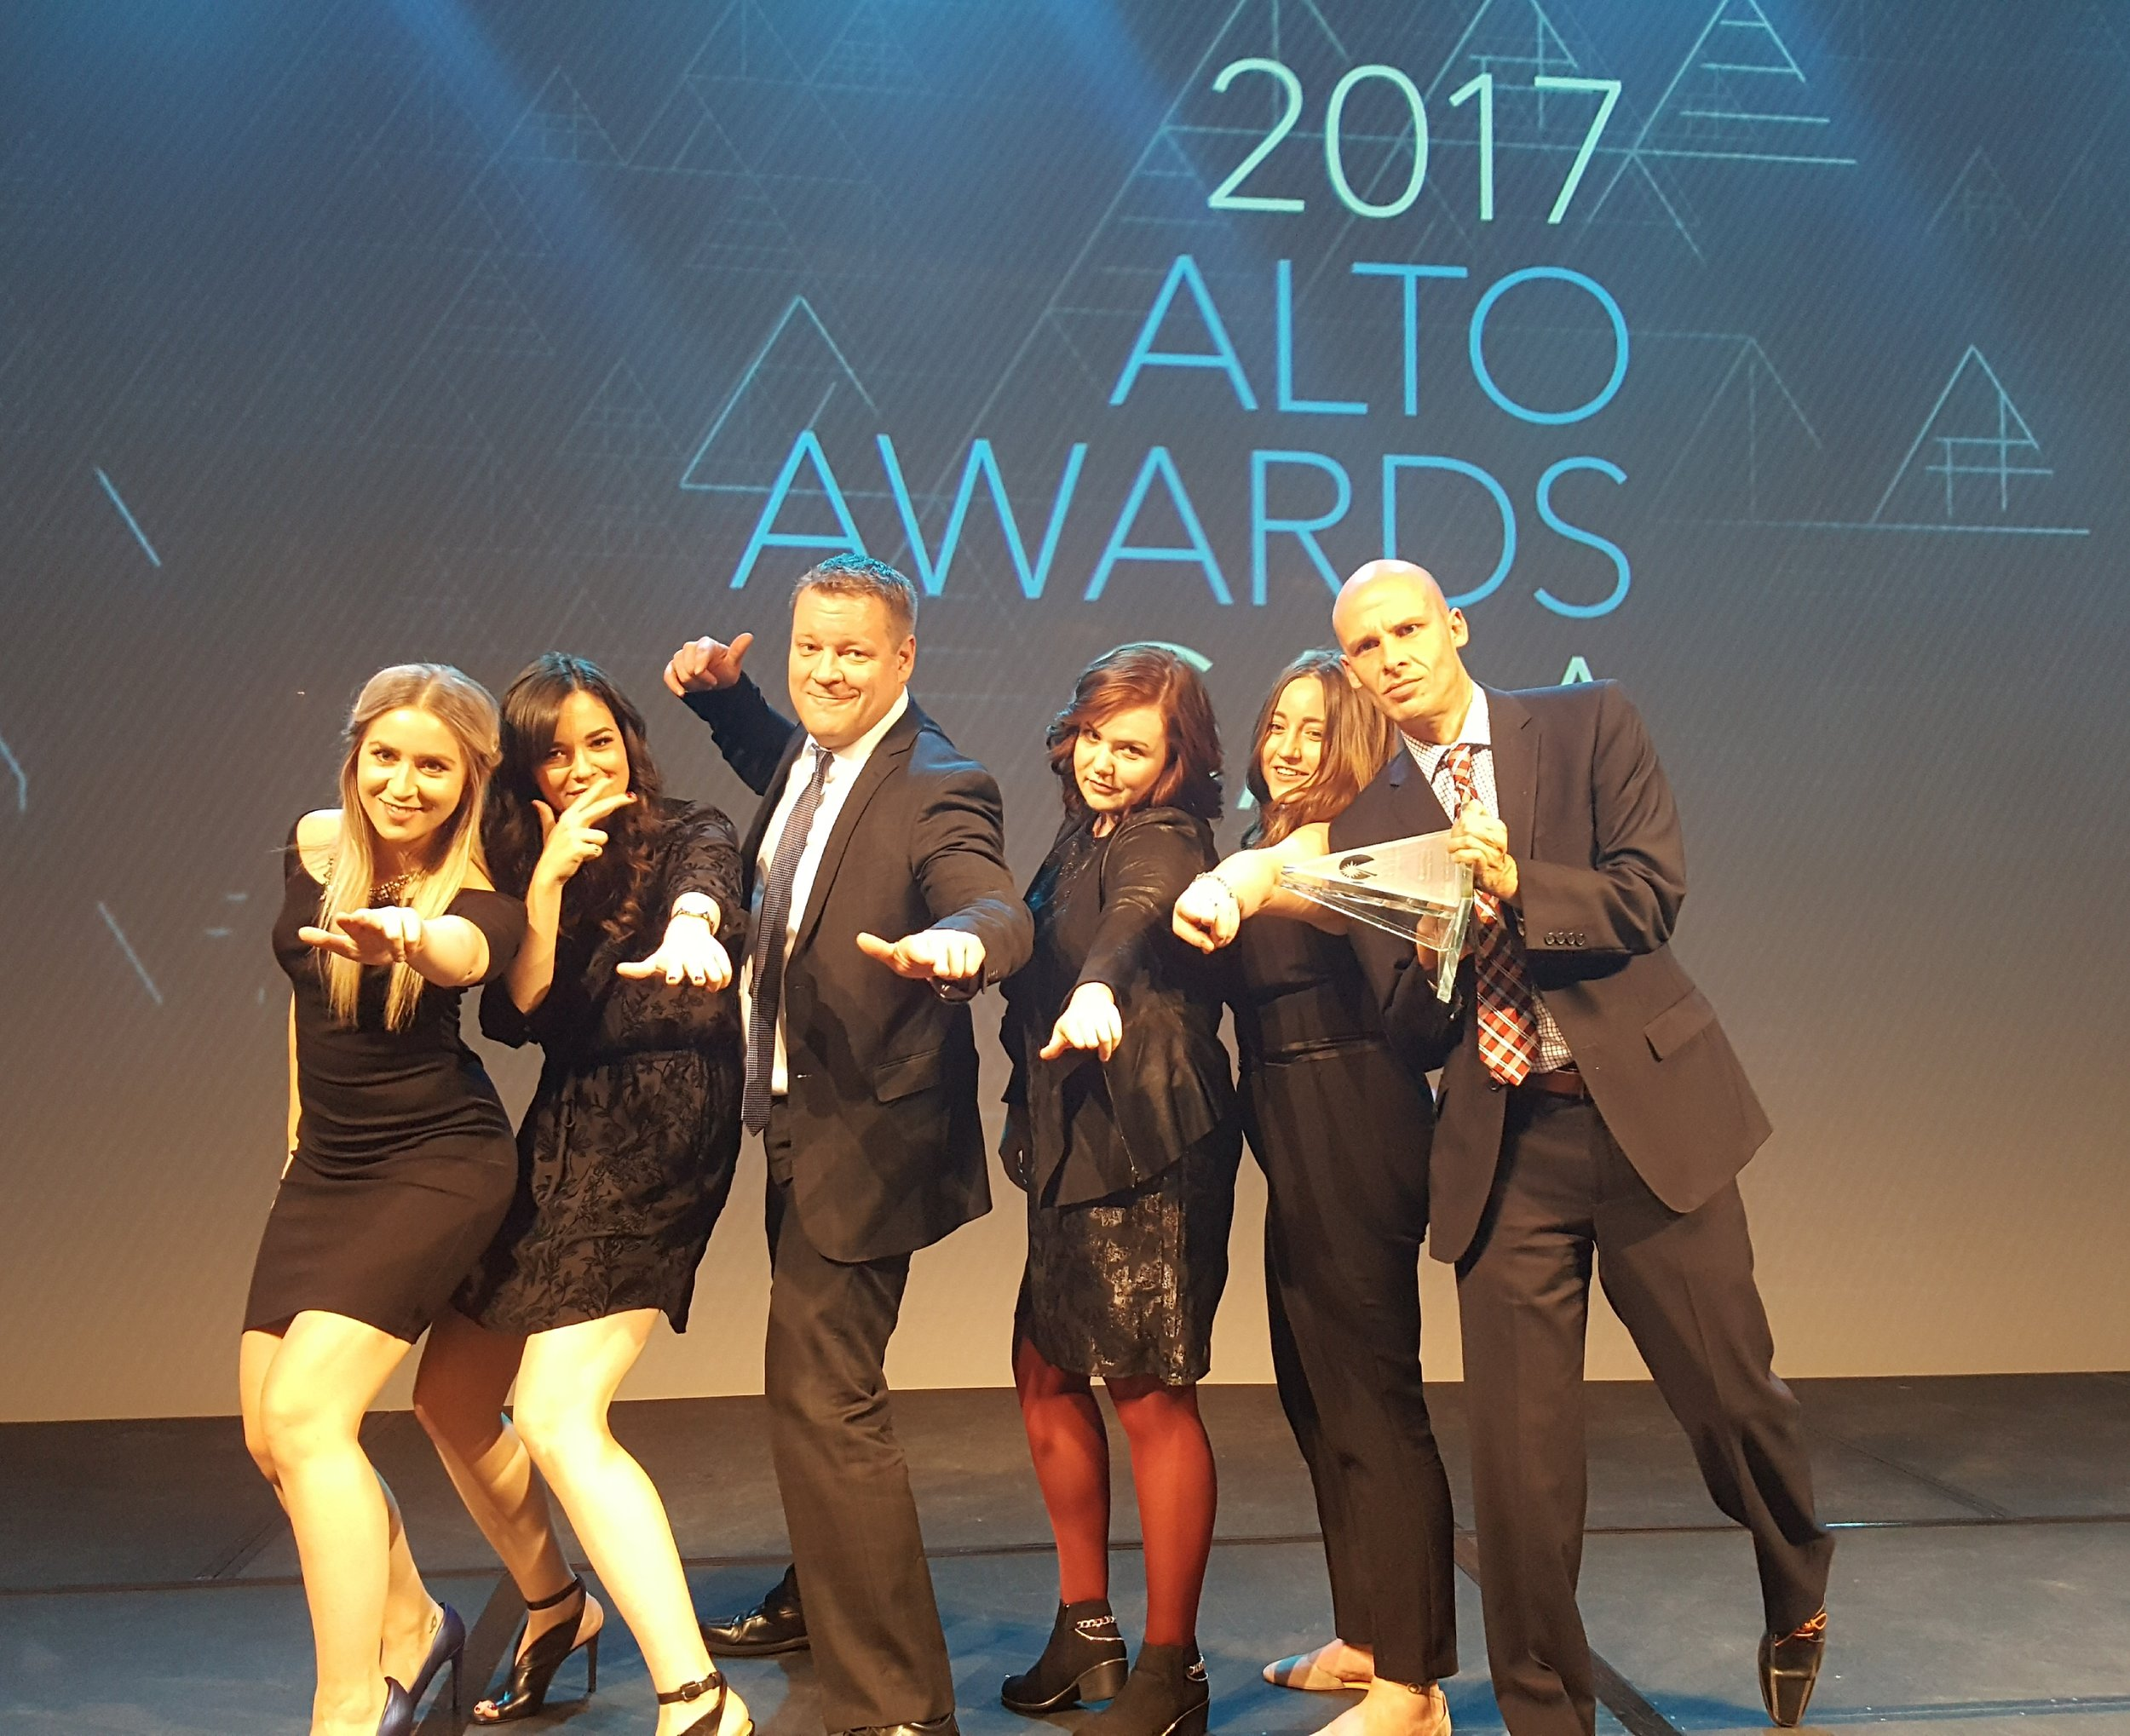 The Edmonton Tourism team receiving the Alto Award as Winner in the $10-$50K Marketing Excellence category.